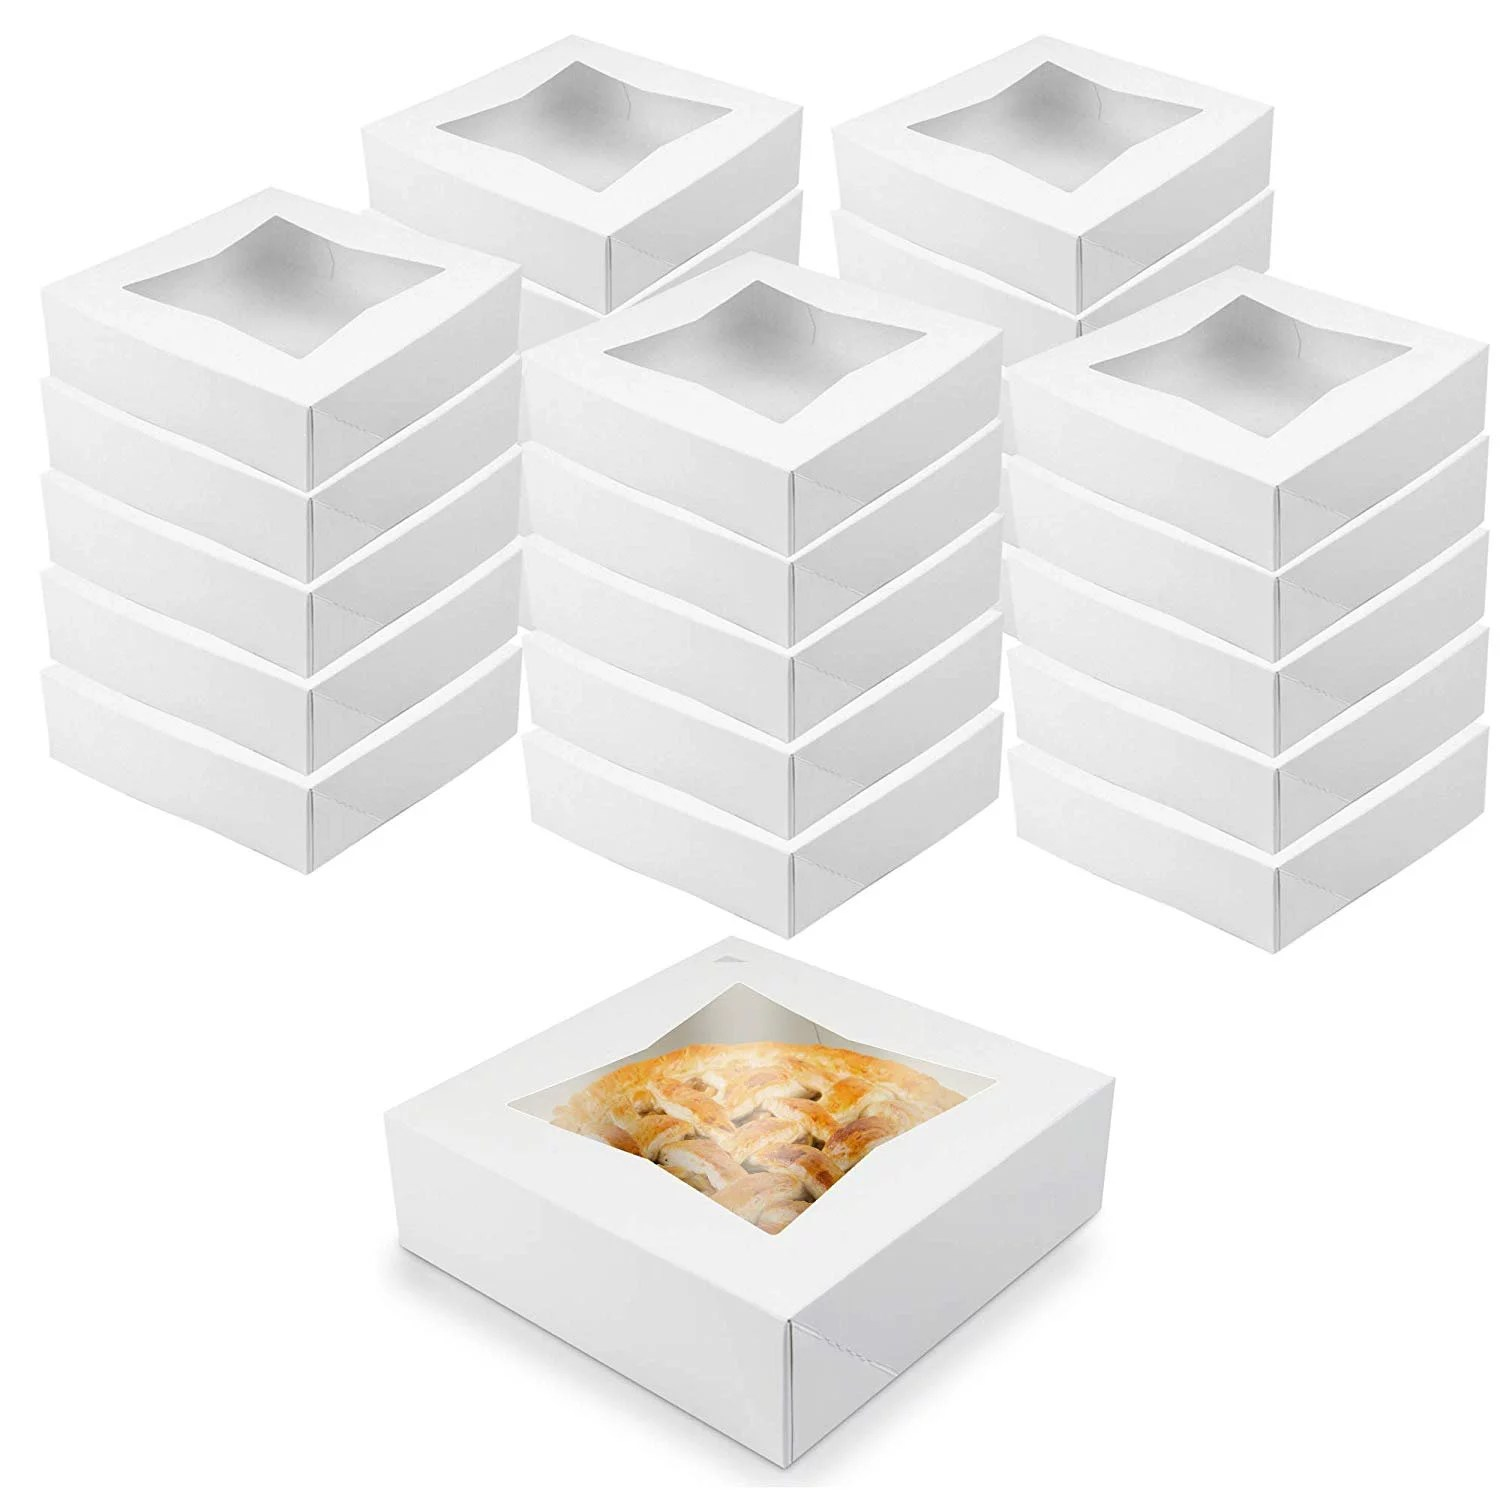 O'Creme White Bakery Boxes with Window 8x8x2.5 in, 25 Pack, Display Pies, Pastries, Cupcakes and Cookies | Paperboard White Kraft Auto-Popup Window Cake Boxes, Pie Pastry Container Carrier - Walmart.com - Walmart.com